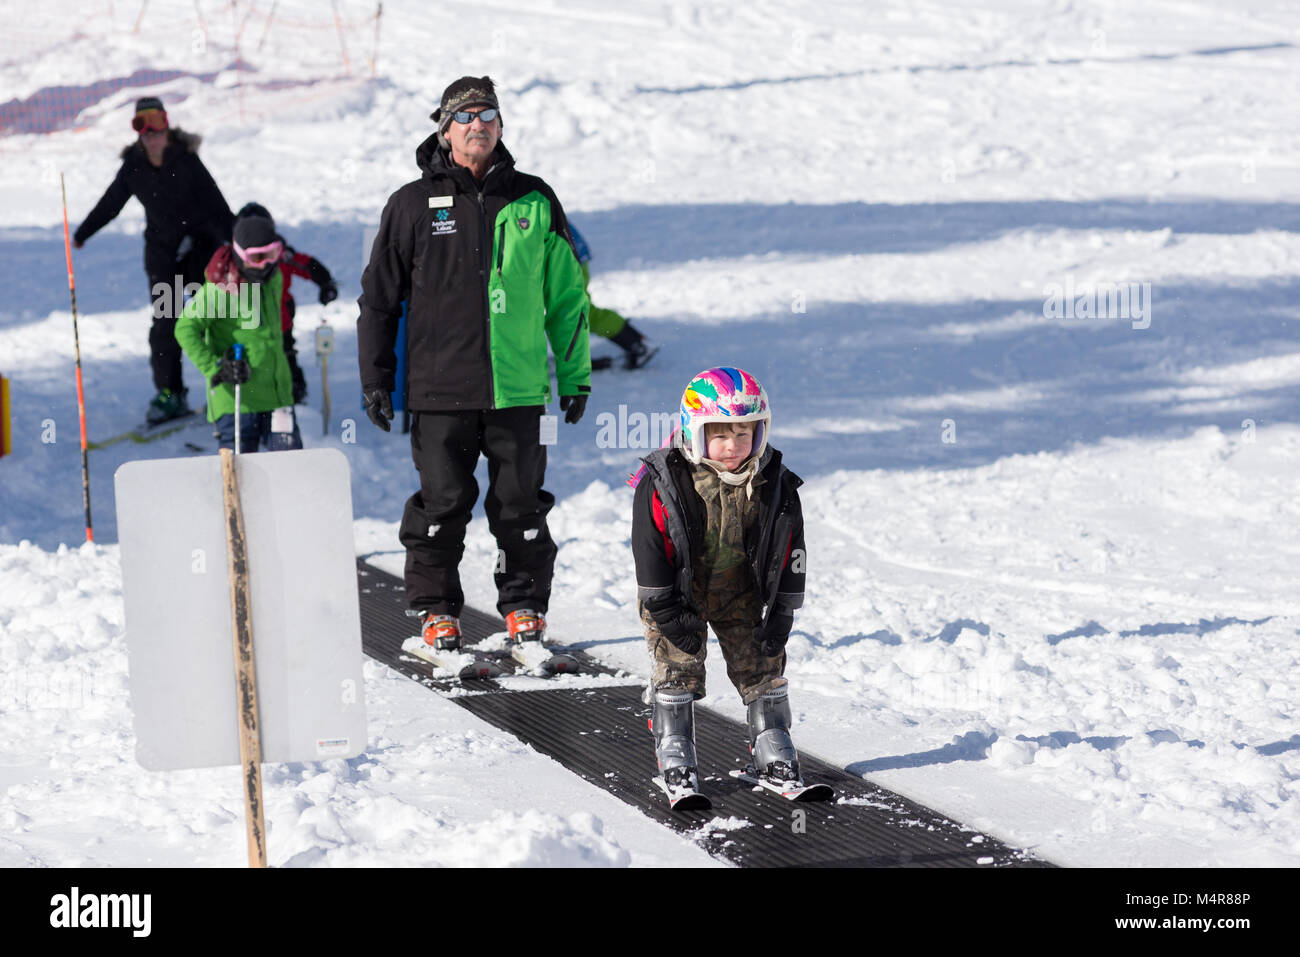 Kids and ski instructor on a magic carpet ski lift at Anthony Lakes Mountain Resort in Northeast Oregon. - Stock Image